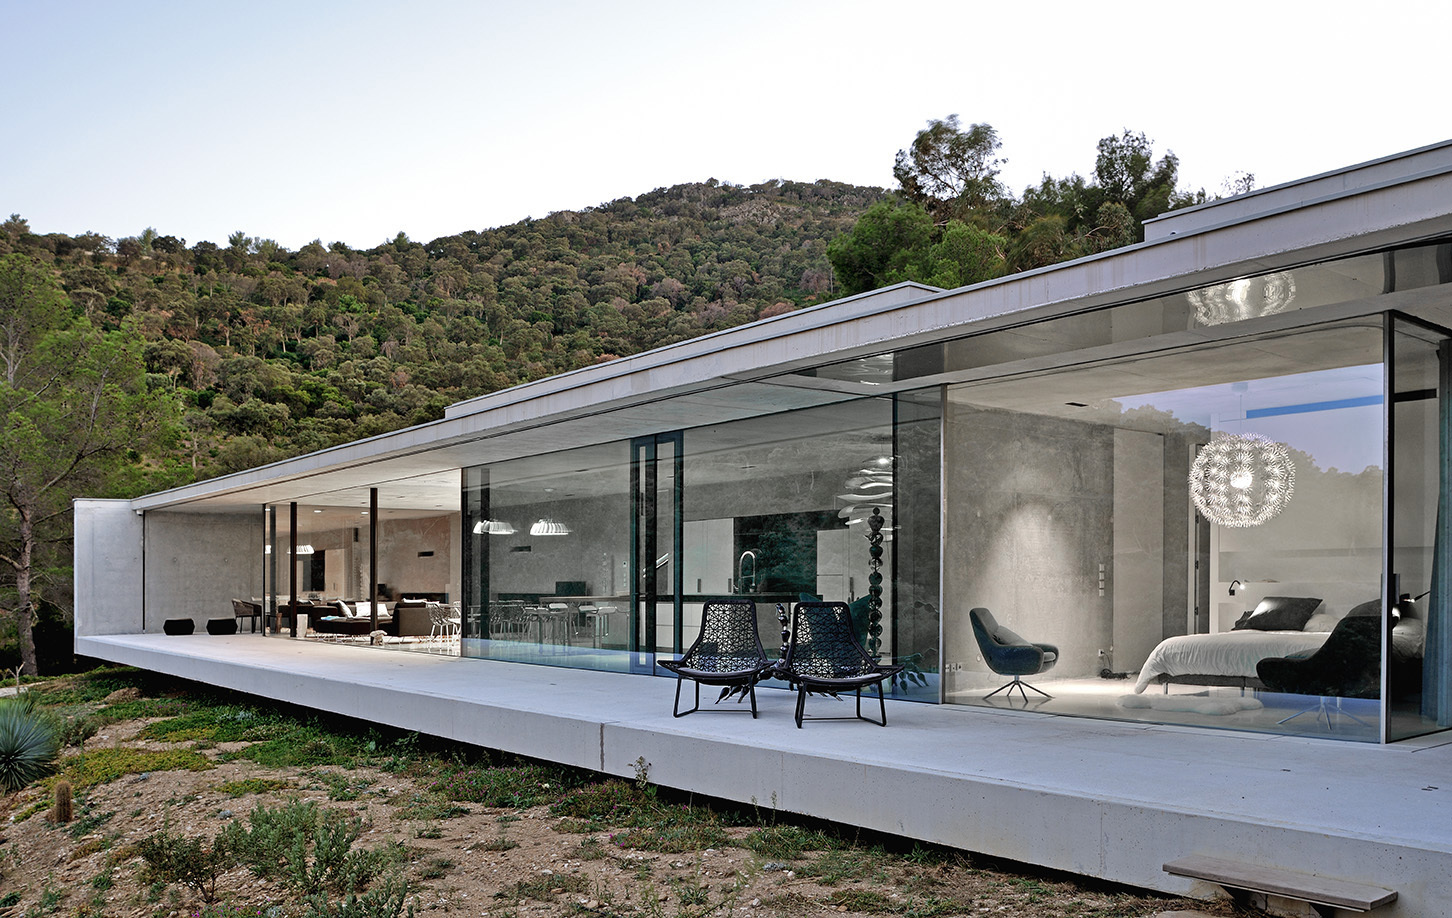 La mira ra aum pierre minassian archdaily for Animateur maison france 5